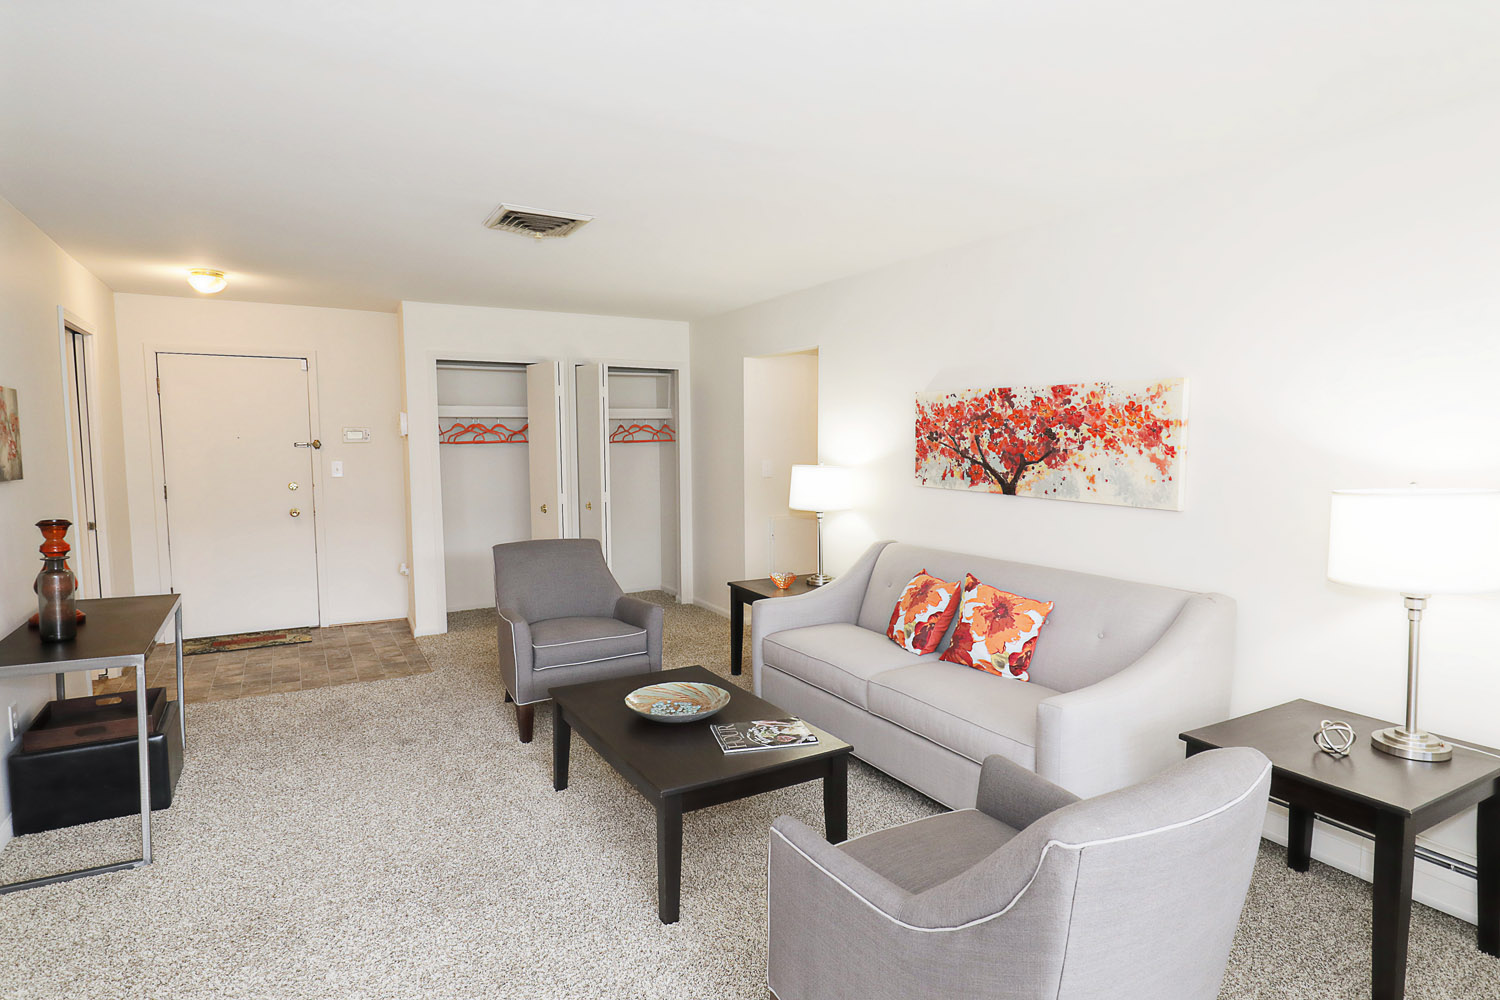 Two Bedroom Mid-Rise Standard (2 Bed, 2 Bath) | Oxley ...